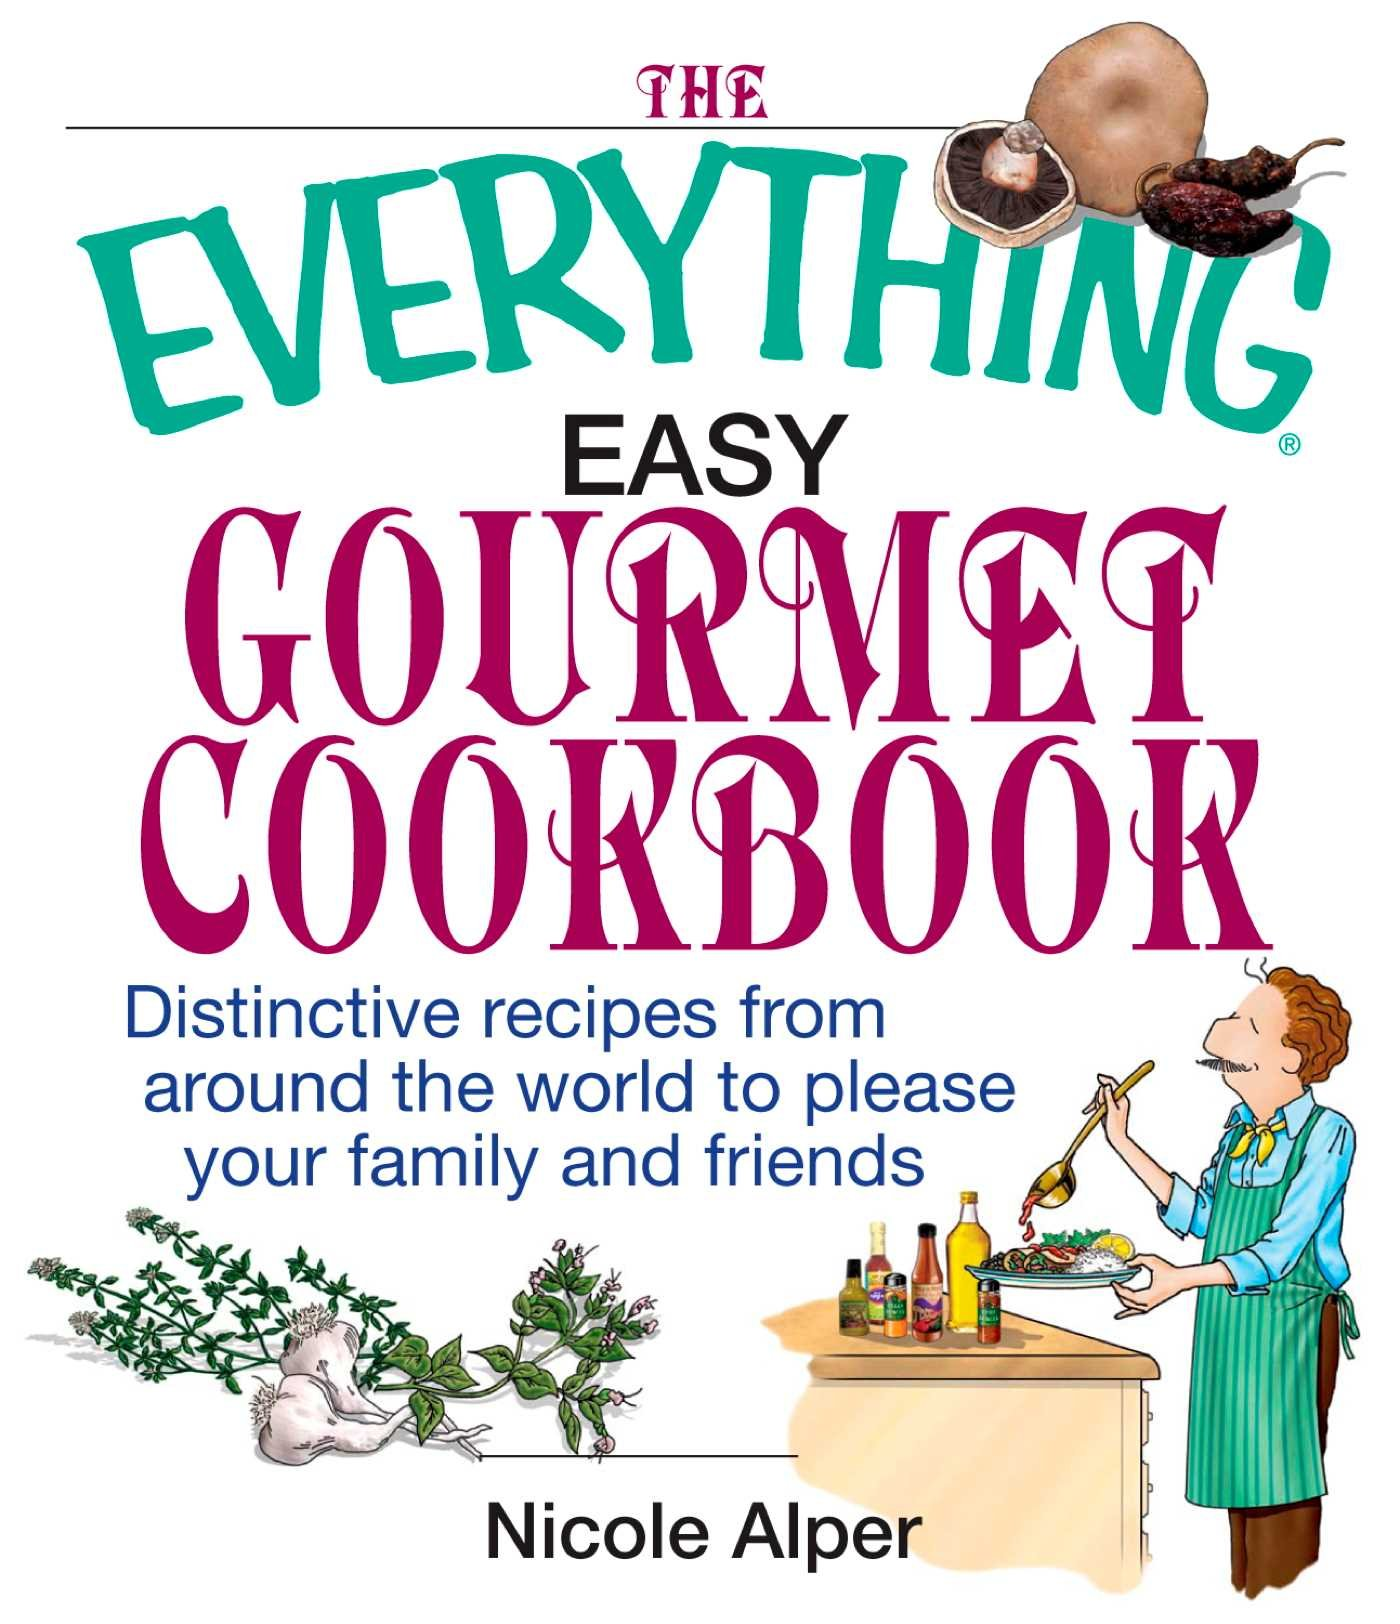 Download The Everything Easy Gourmet Cookbook: Over 250 Distinctive recipes from arounf the world to please your family and friends...